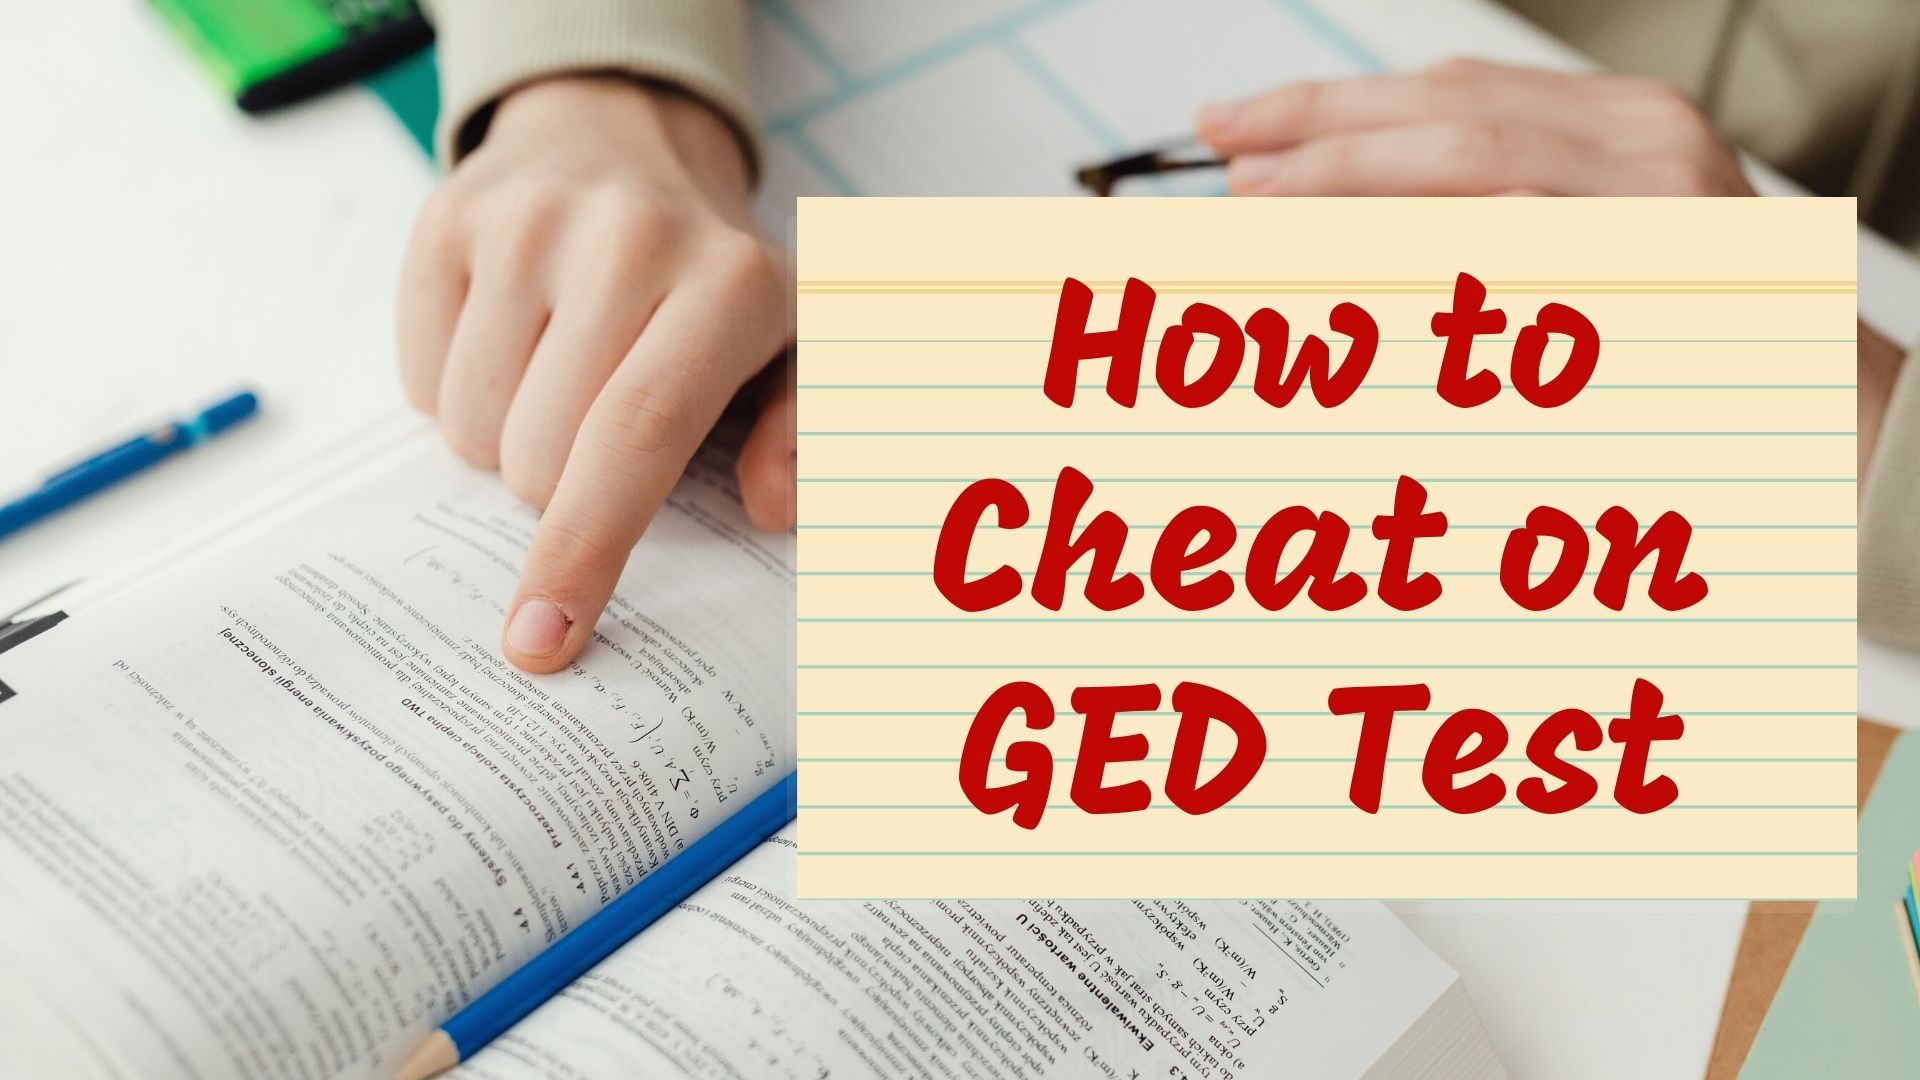 how to cheat on ged test